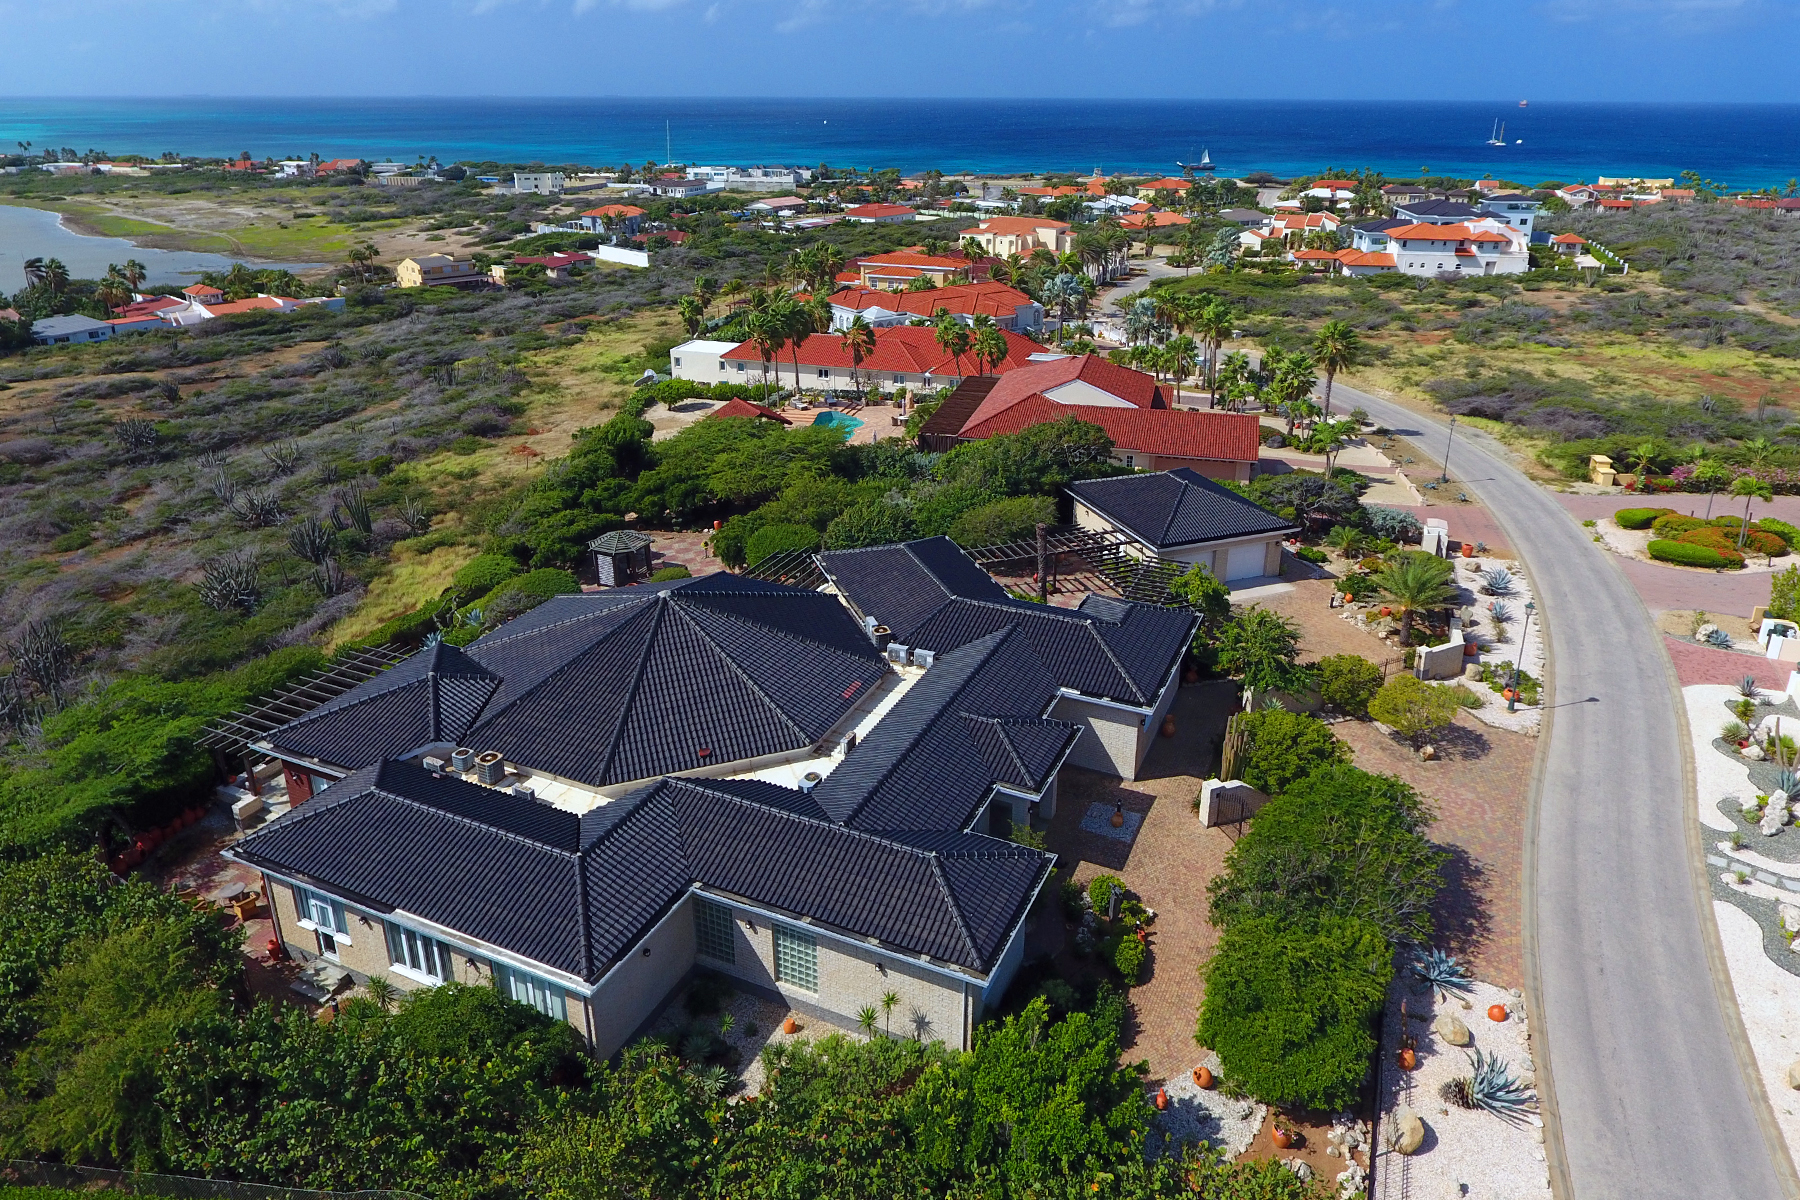 Single Family Home for Sale at Belle Vista 2&3 Malmok, Aruba